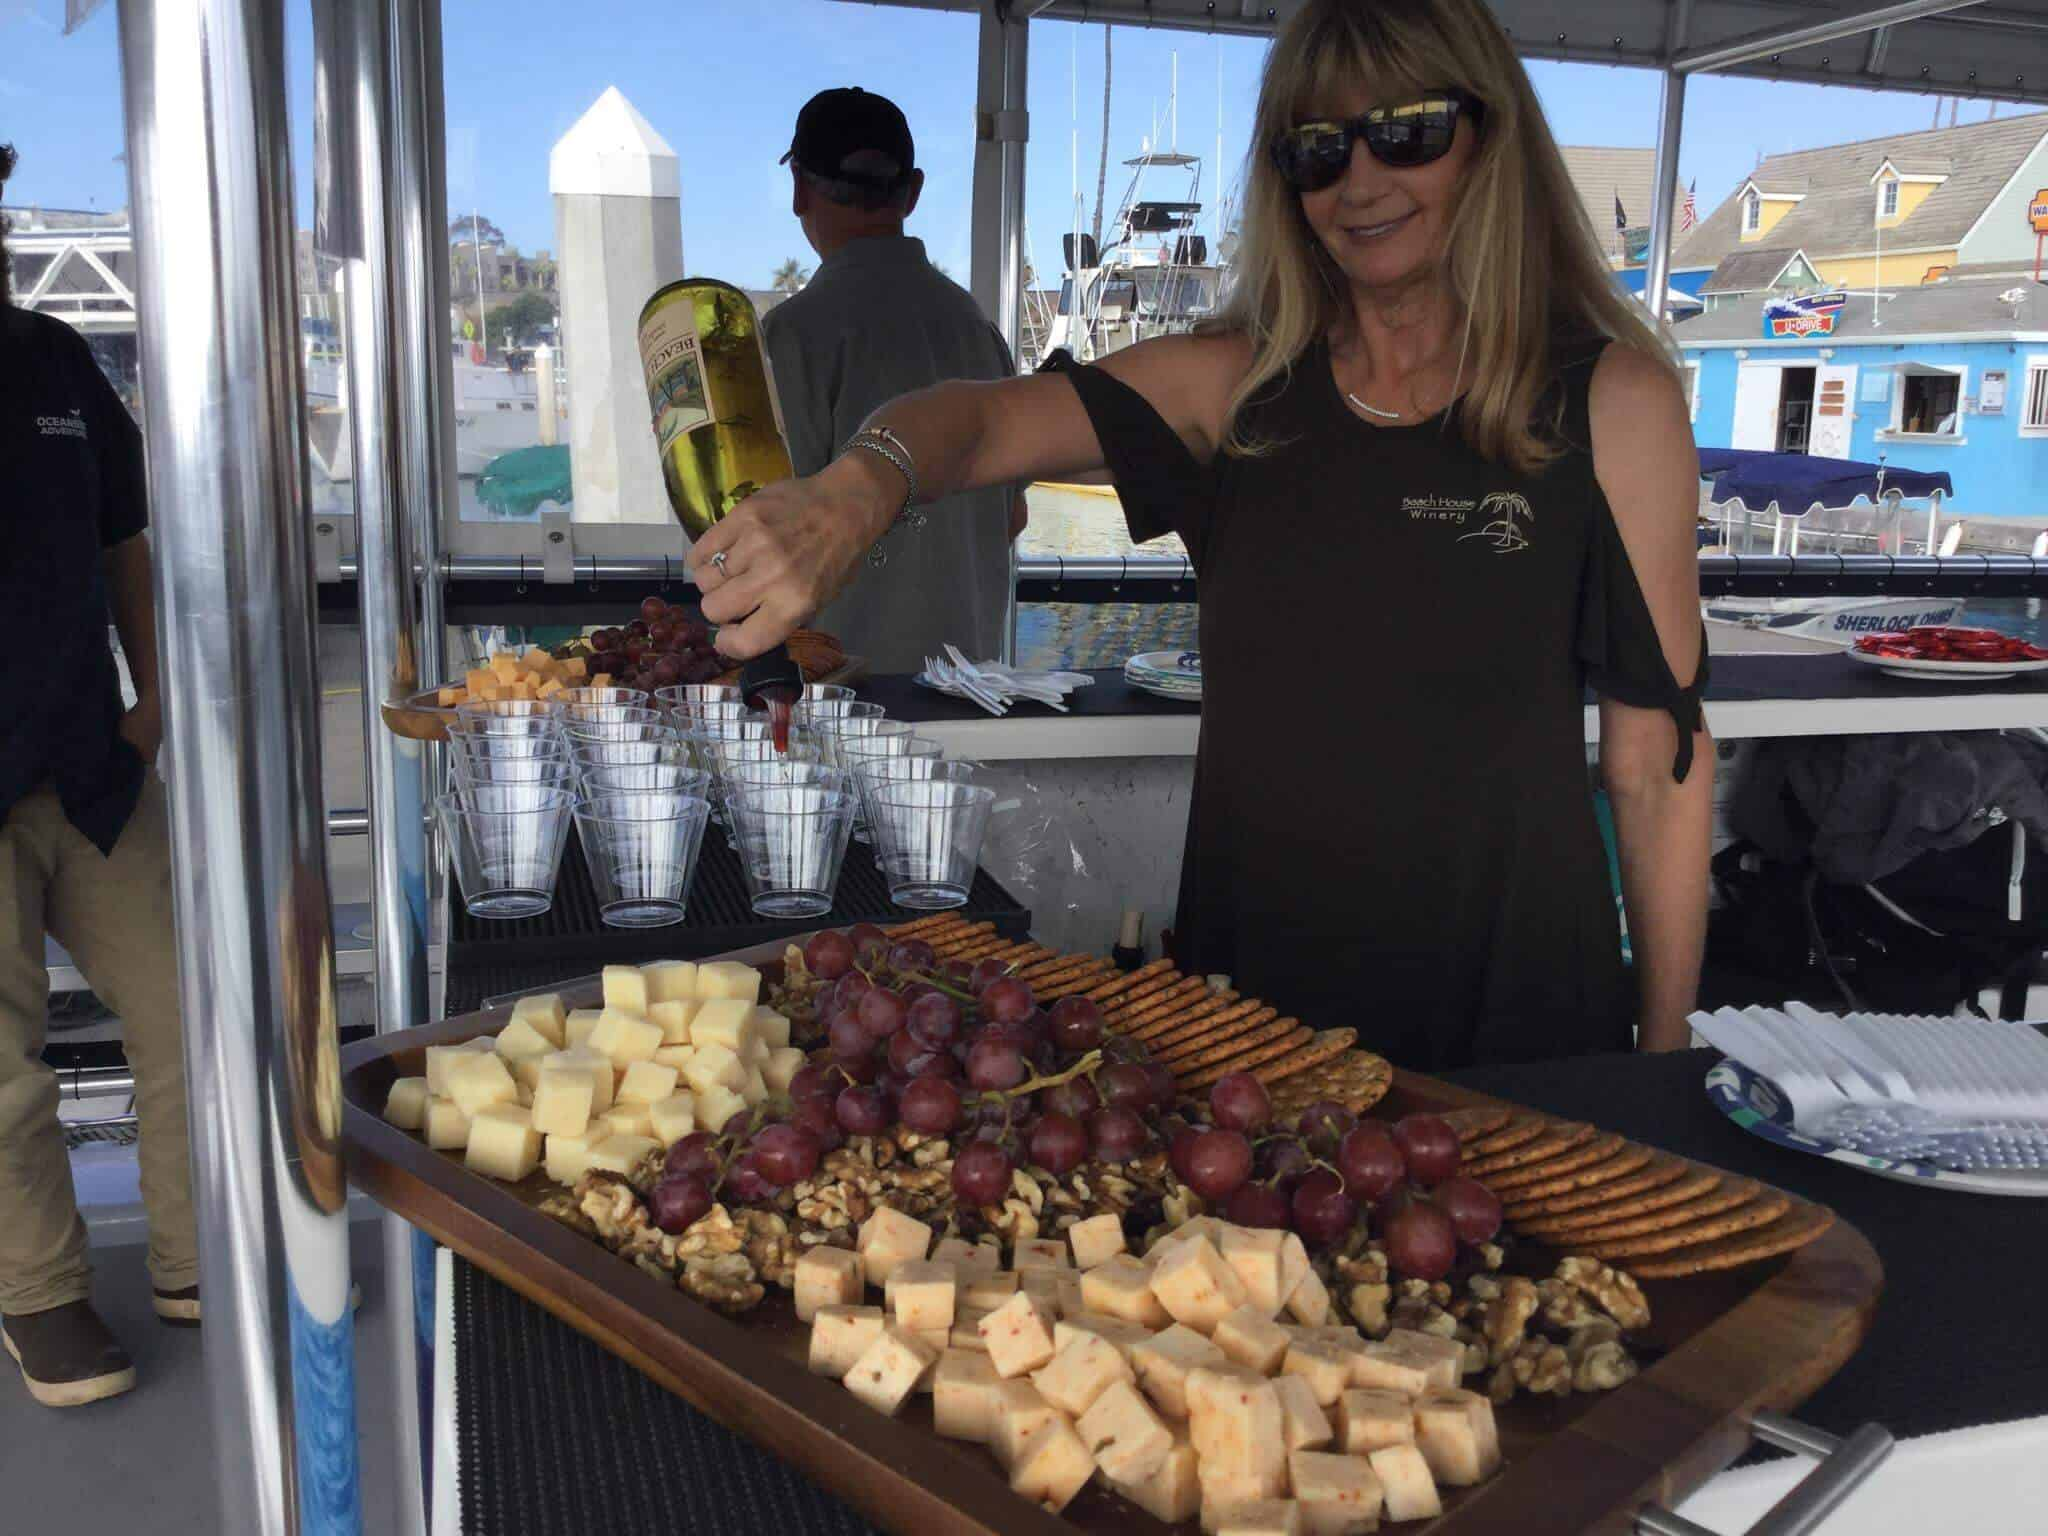 Harbor Wine Cruise with Beach House Winery and Oceanside Adventures